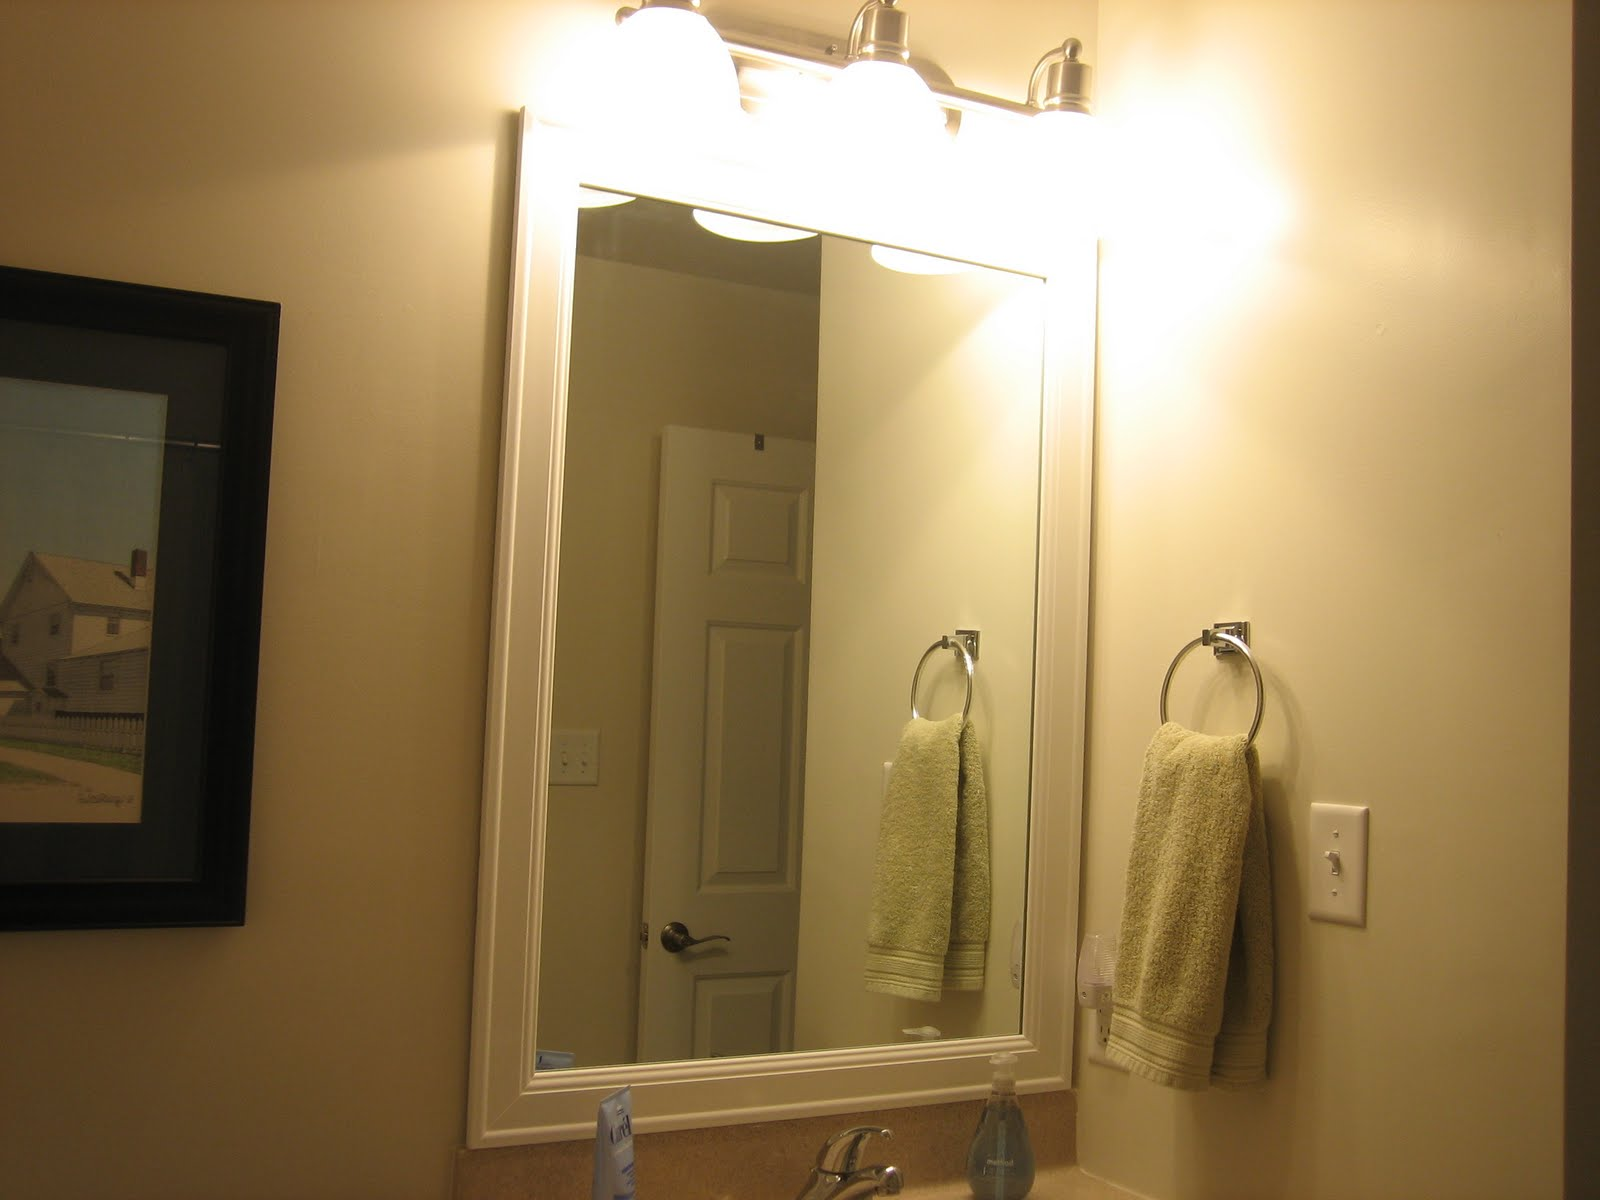 Elizabeth & Co.: Framing Bathroom Mirrors